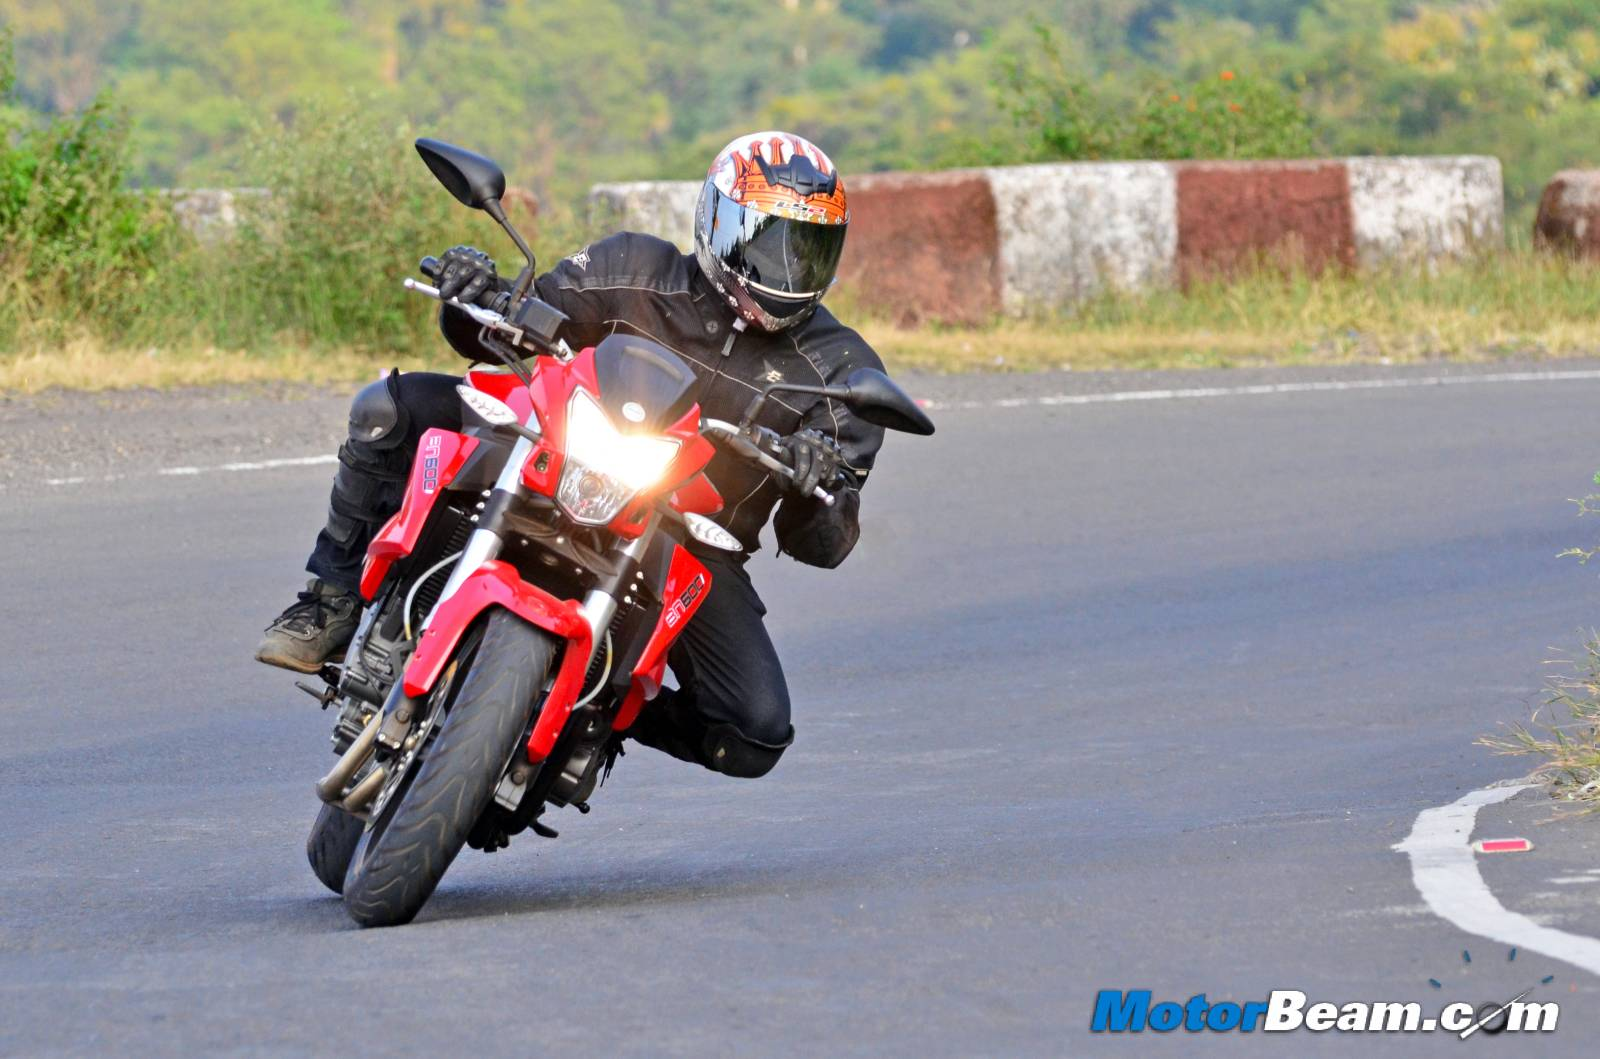 Benelli BN 600i Review